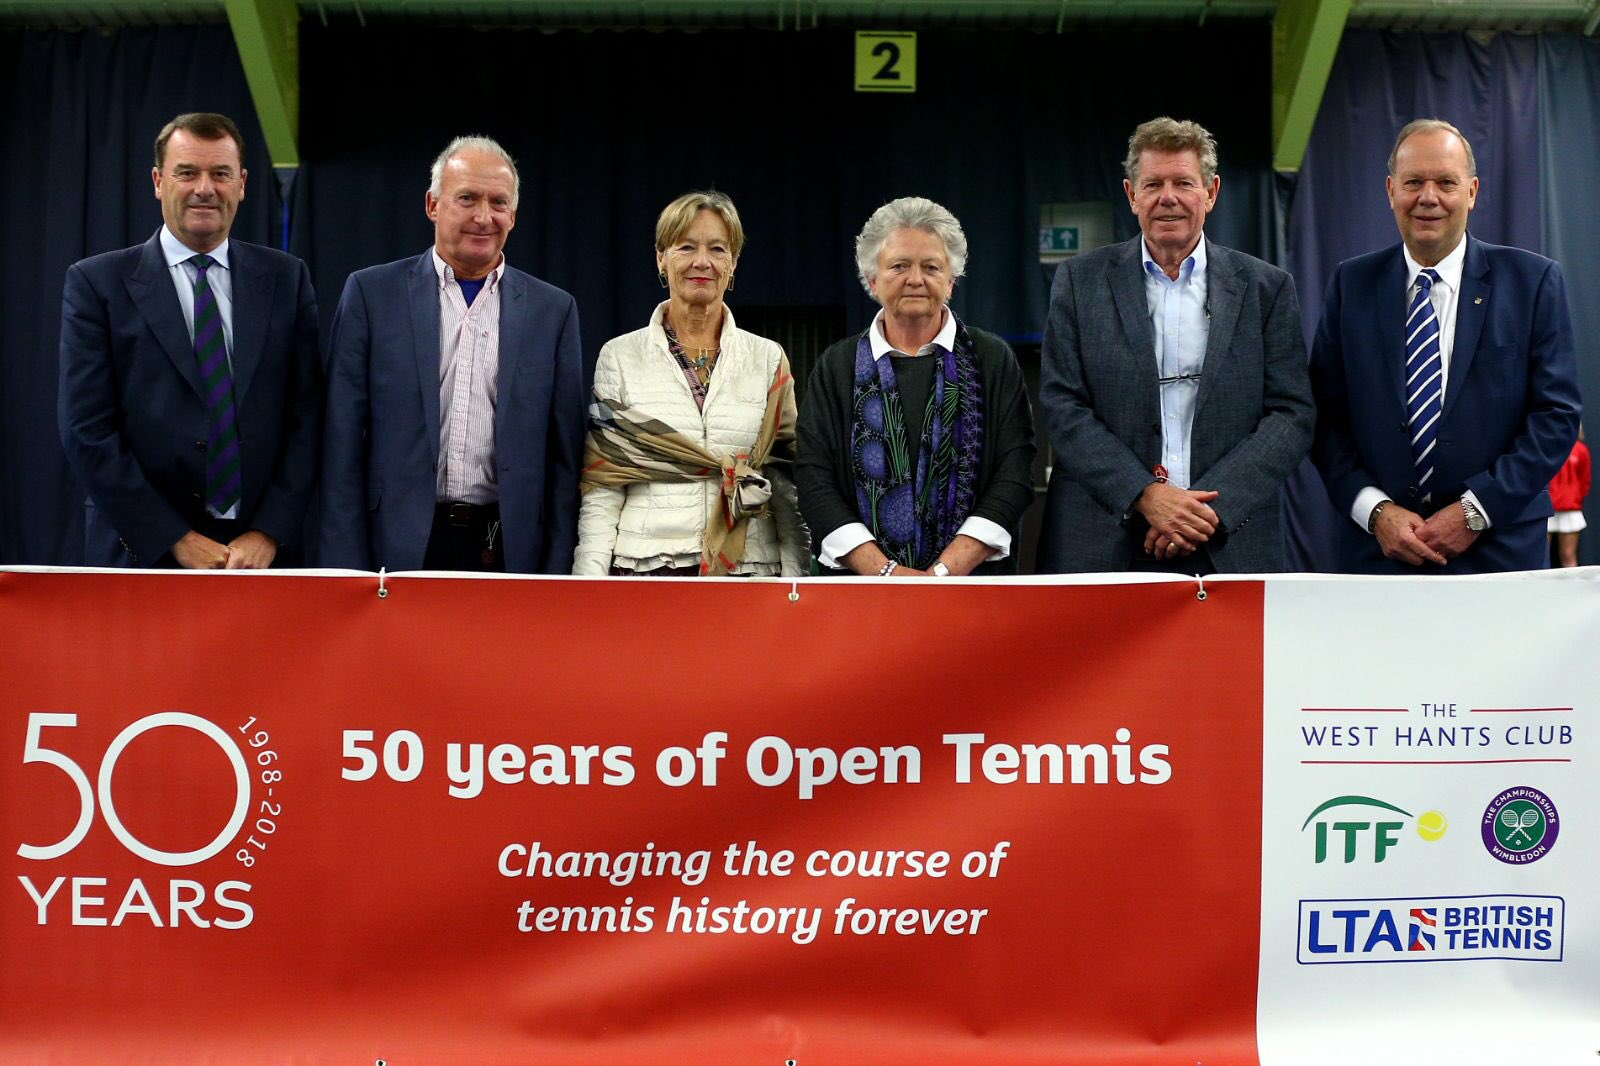 Commemorating the birth of the Open Era at the @WestHantsClub, home to the first open tennis tournament in 1968 https://t.co/3Mcr8SiWm5